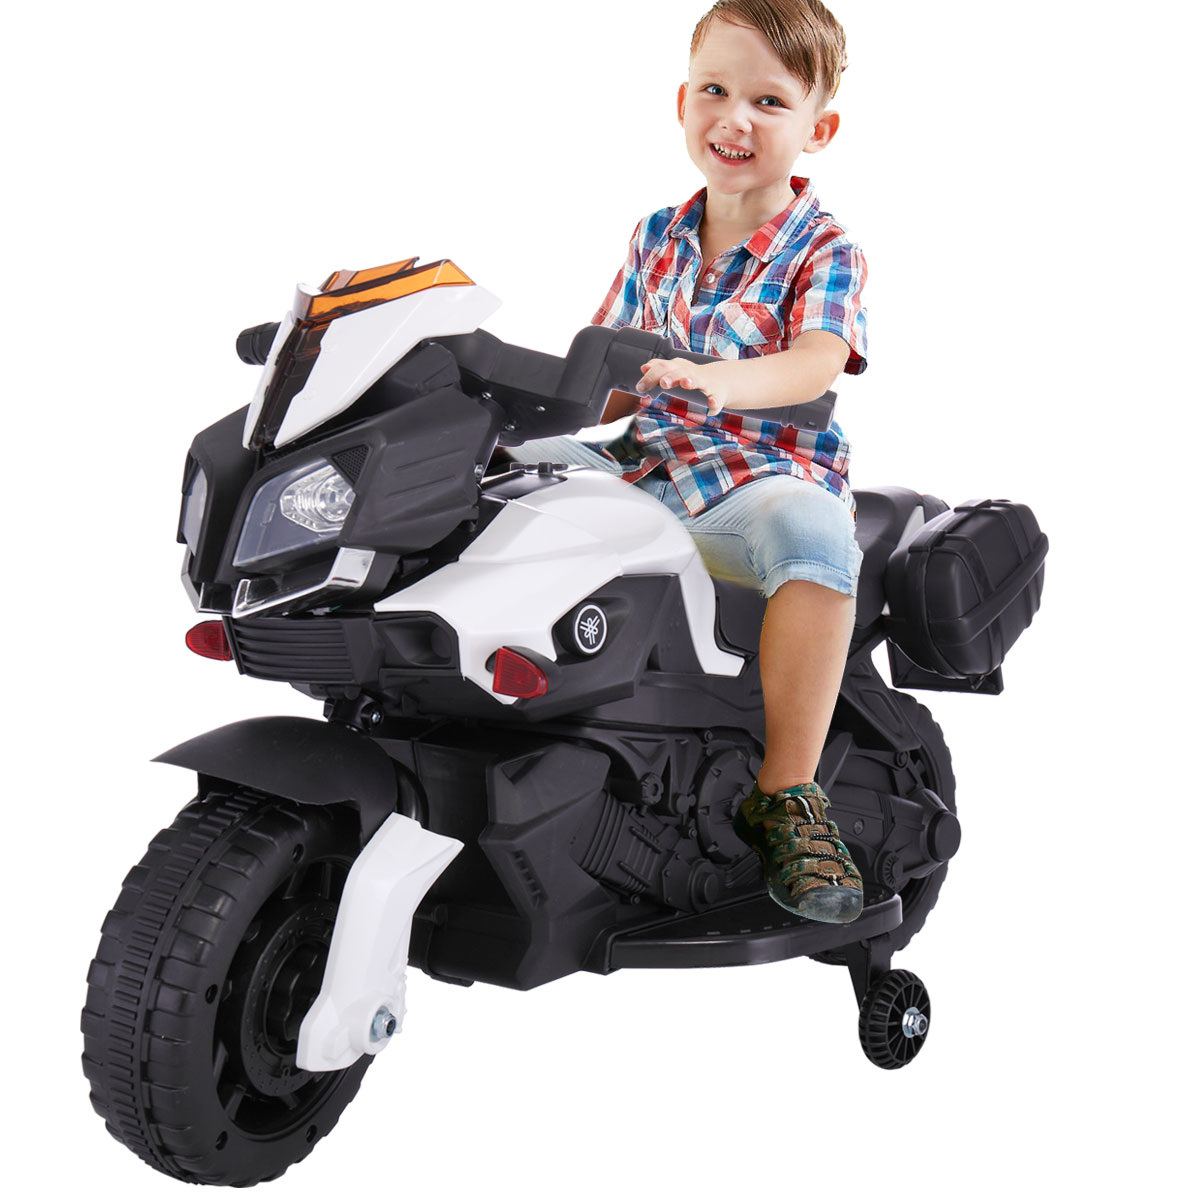 Jaxpety 6V Kids Ride On Motorcycle Battery Powered 4 Wheel Car Bicycle Electric Toy New White